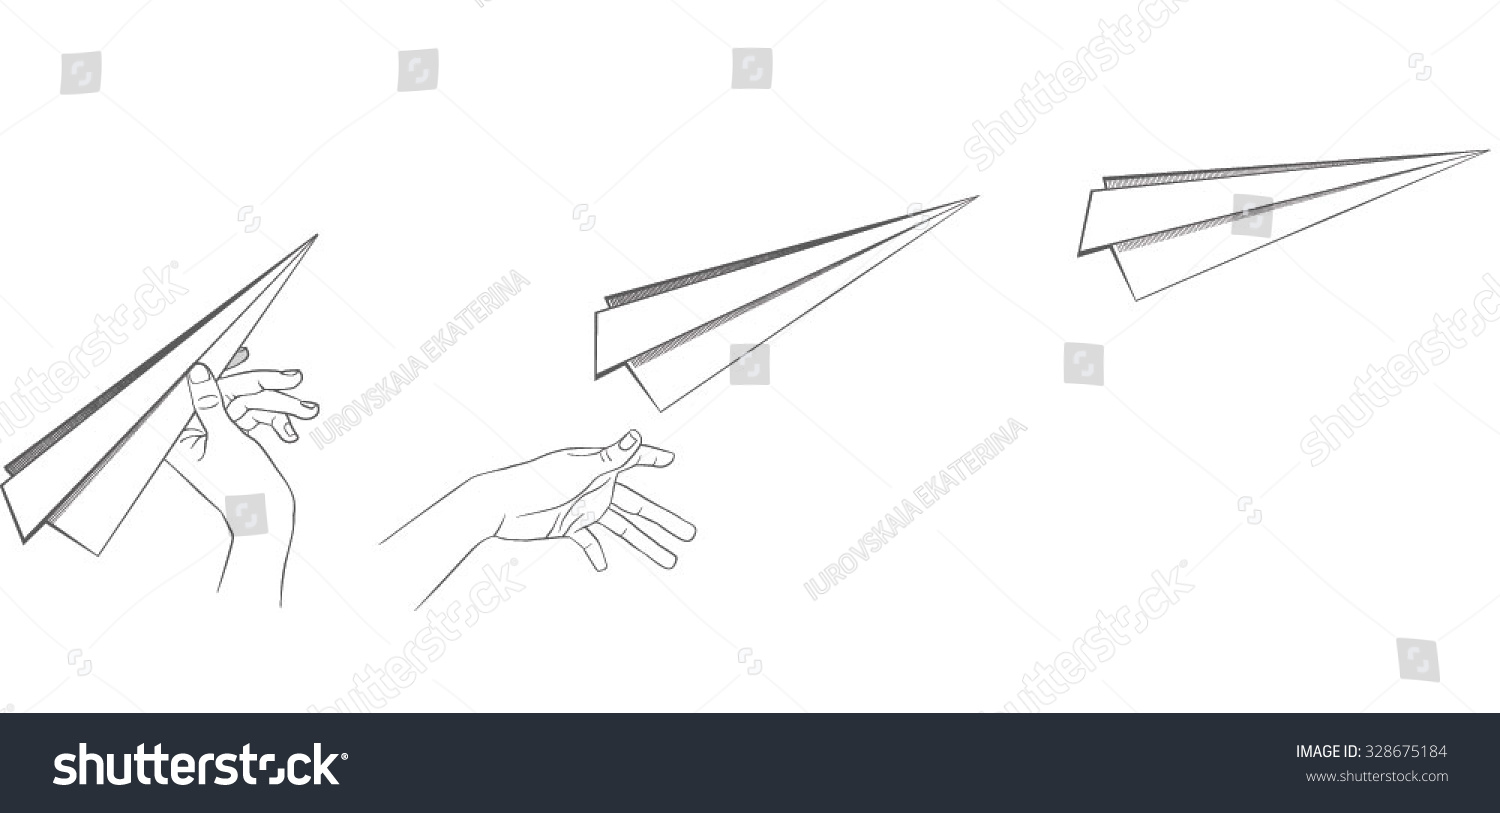 Launching paper airplane storyboard vector vectores en stock launching a paper airplane storyboard vector malvernweather Images